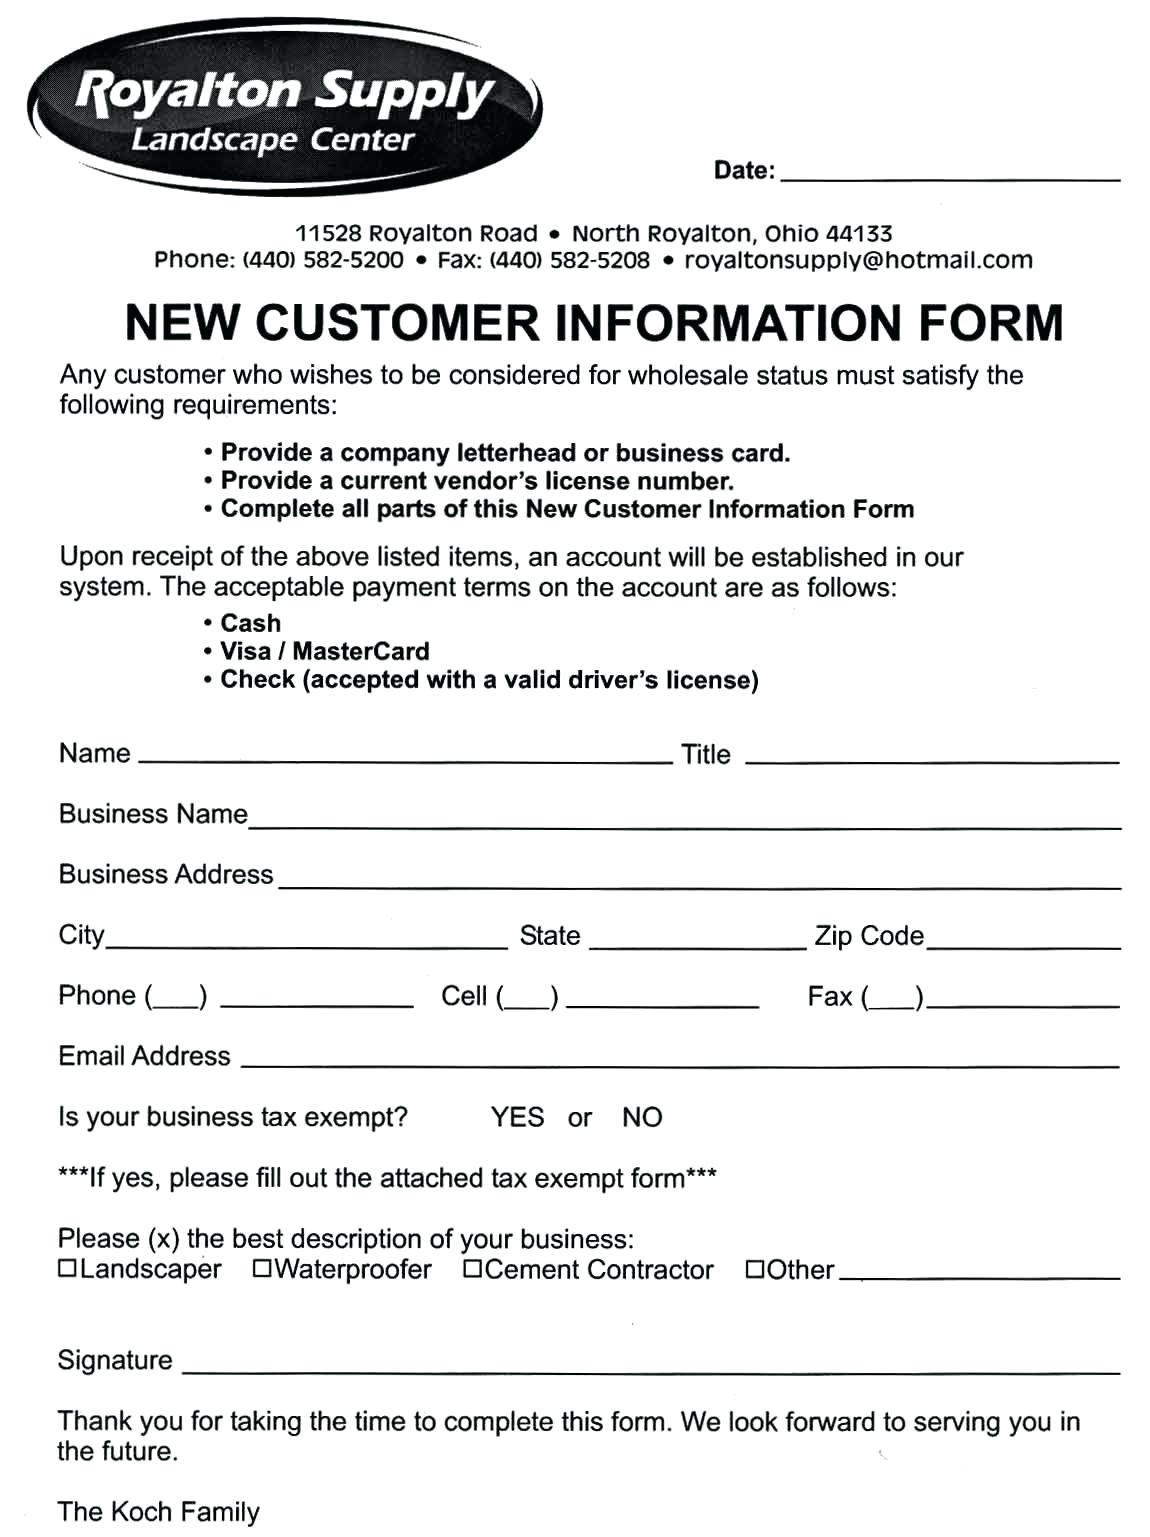 New Customer Form Template Word Tier.brianhenry.co